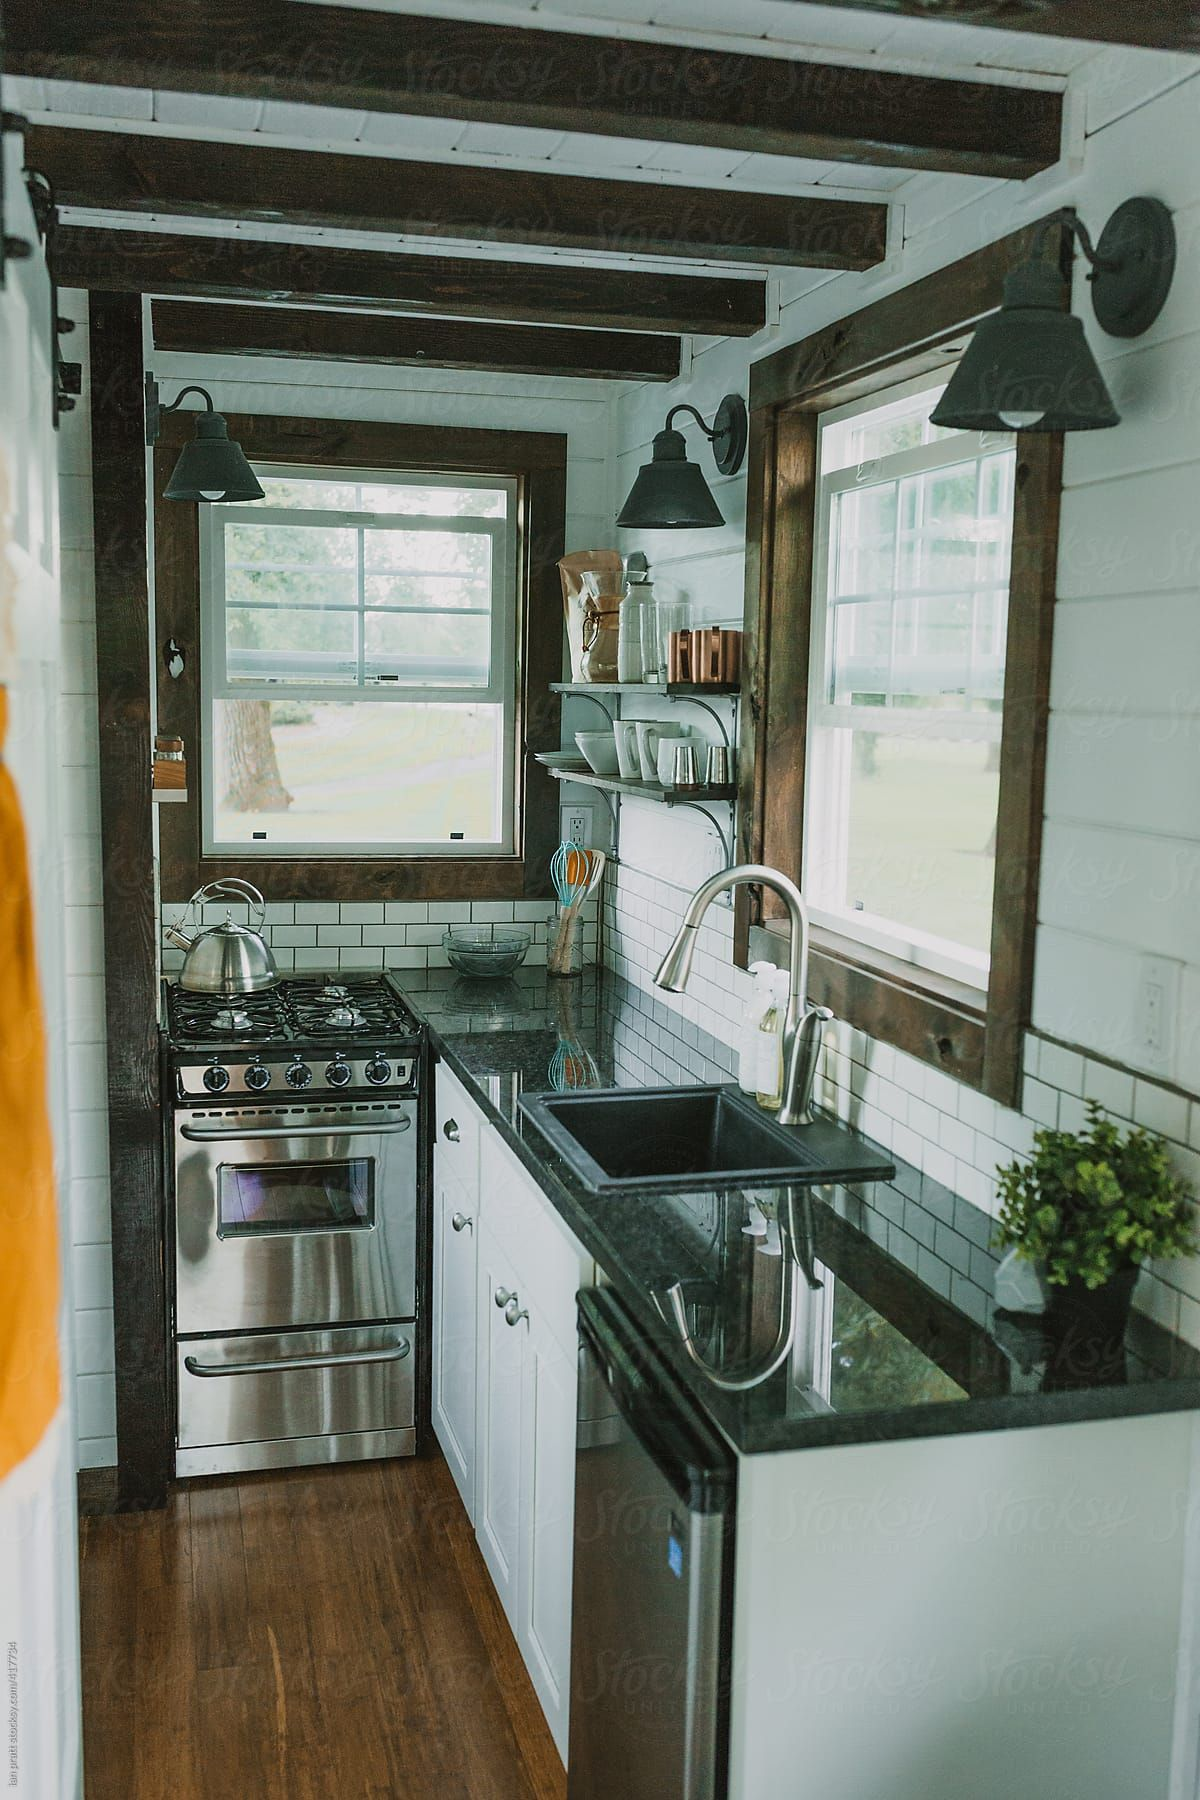 Tiny house kitchen download this high resolution stock photo by ian pratt from stocksy united also rh co pinterest